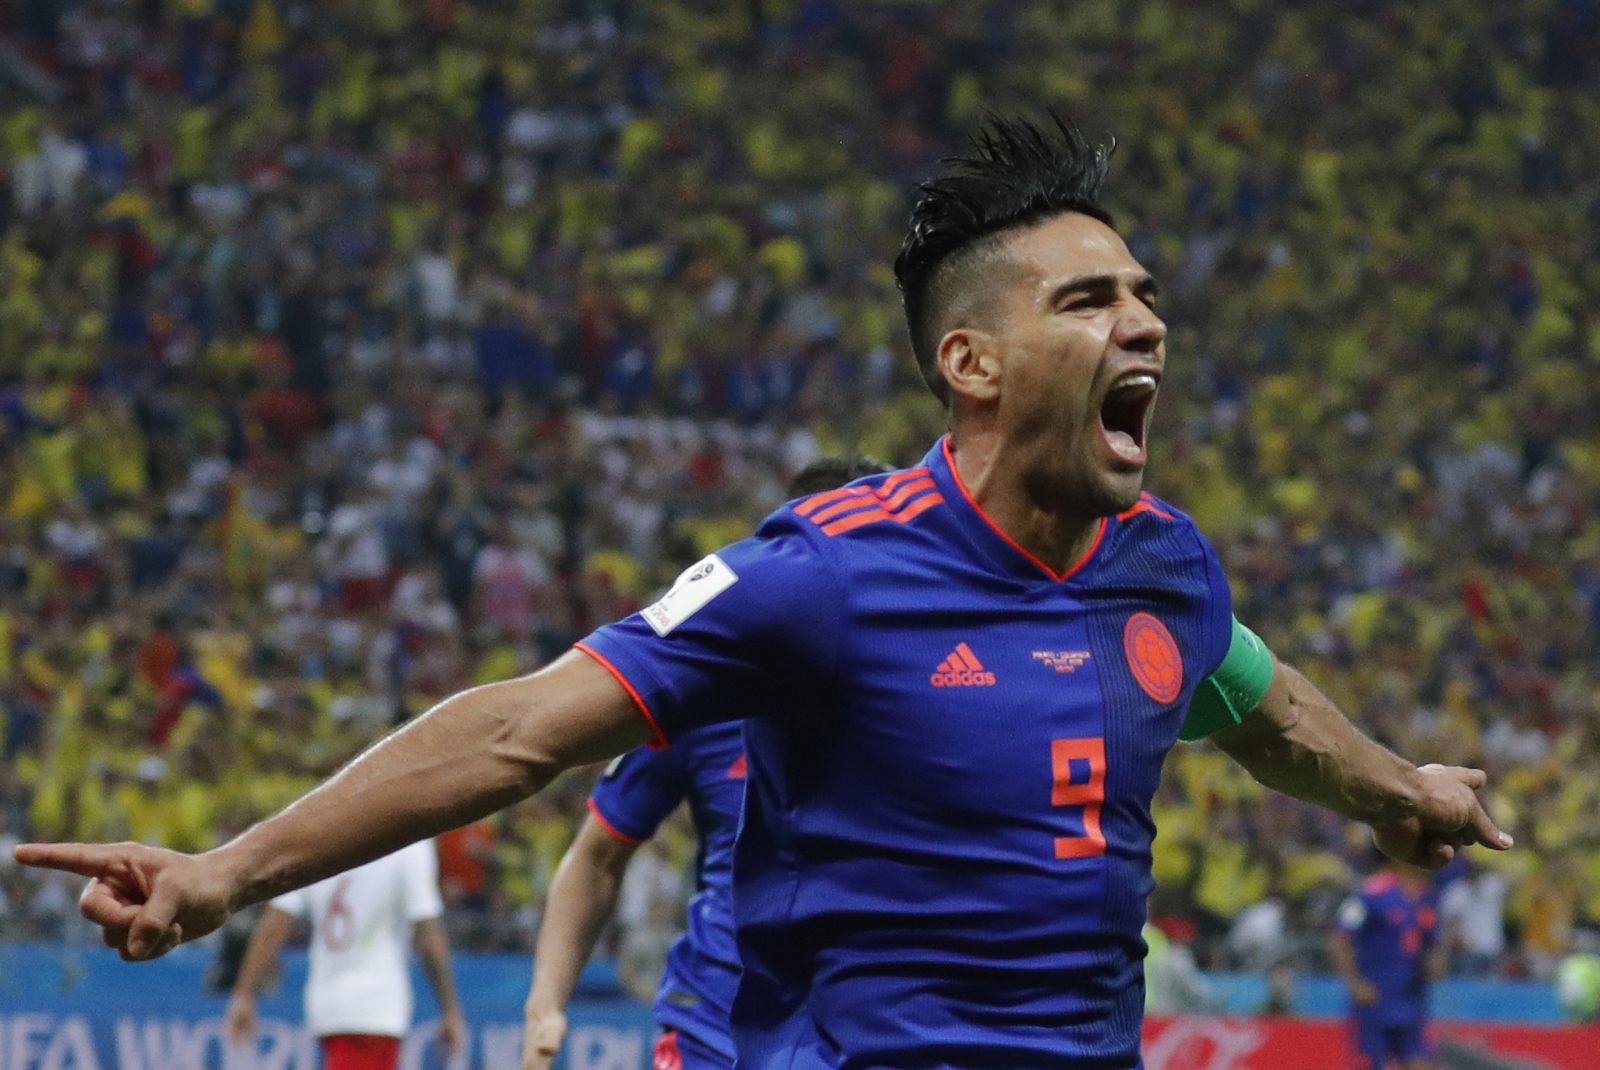 d8095ab49d1 By AFP• 24 June 2018. Radamel Falcao of Colombia celebrates after scoring  the 0-2 goal during the FIFA World Cup 2018 group H preliminary round  soccer match ...